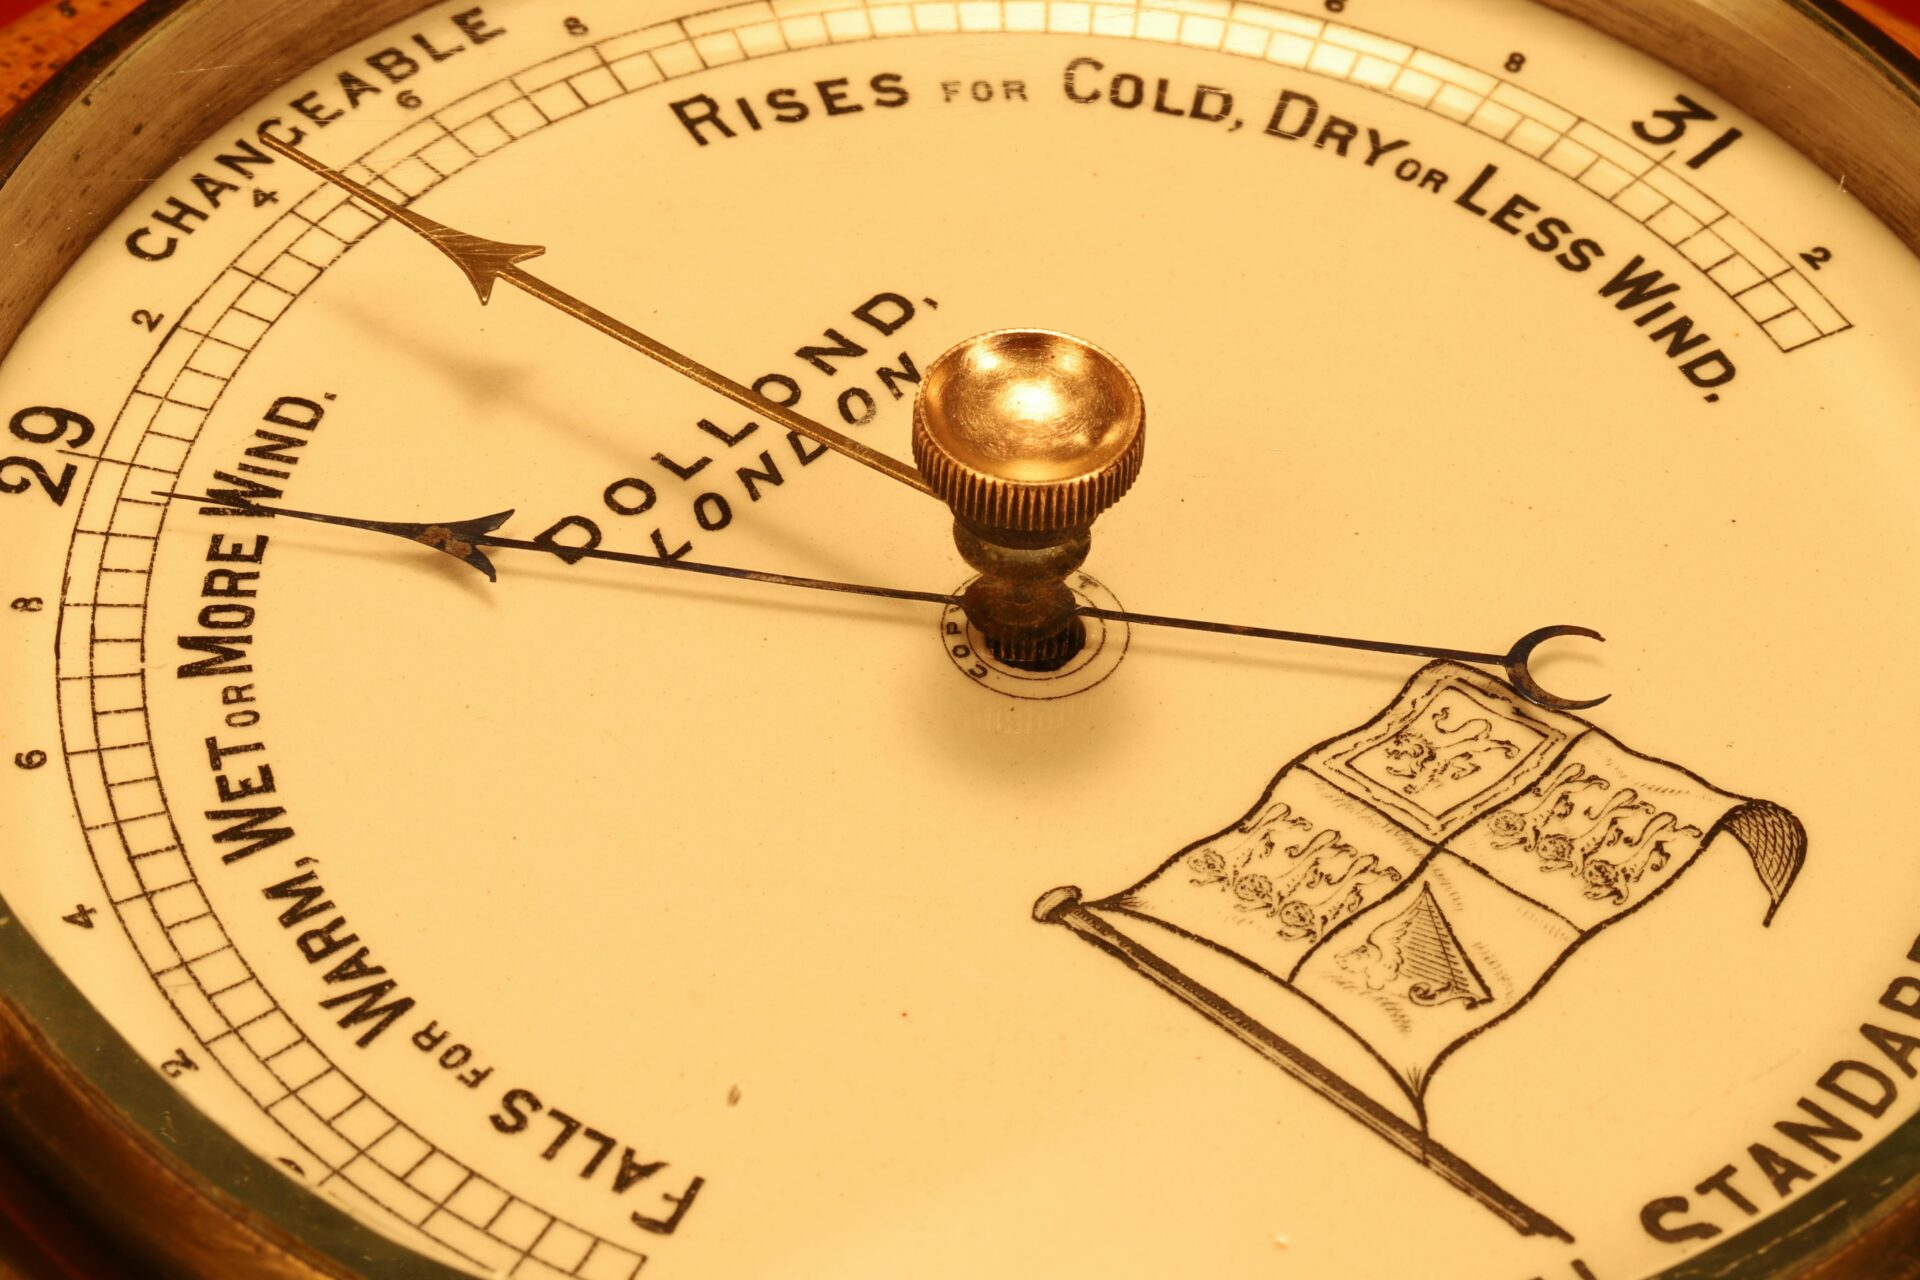 Image of dial of Dollond Royal Standard Marine Barometer c1880 taken from lefthand side